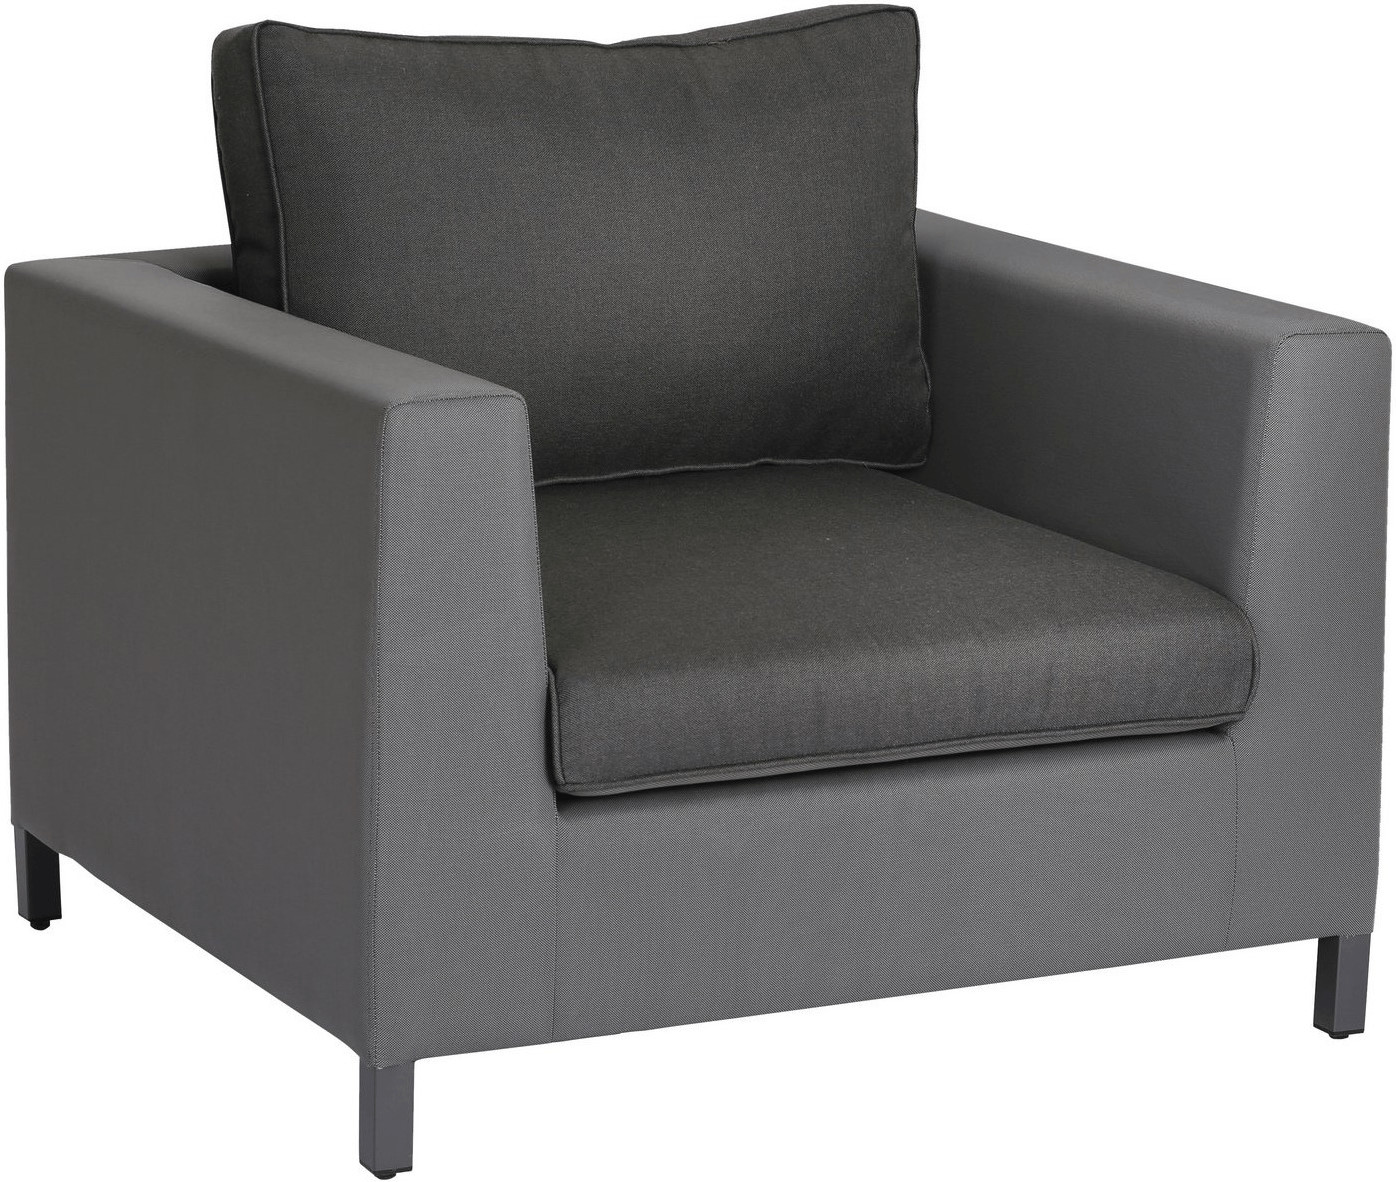 Toskana Lounge Sessel Best Trinidad Lounge Sessel 47050050